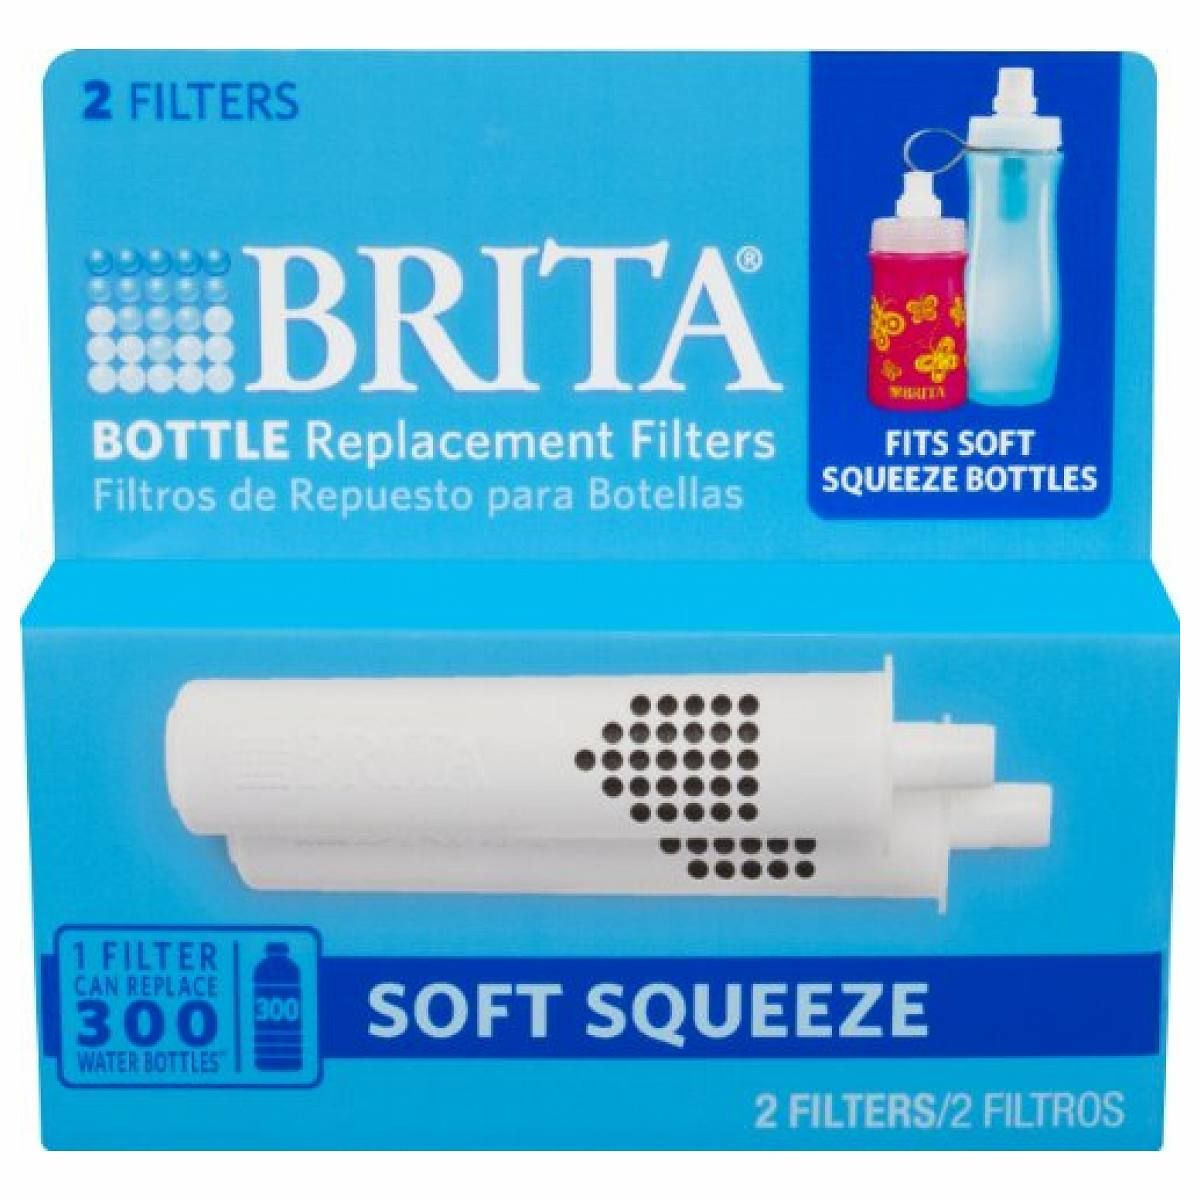 61f6b6b136 Brita Soft Squeeze Water Filter Bottle Replacement Filters, 2 Count - Join  the Pricefalls family - Pricefalls.com Online Marketplace & Stores